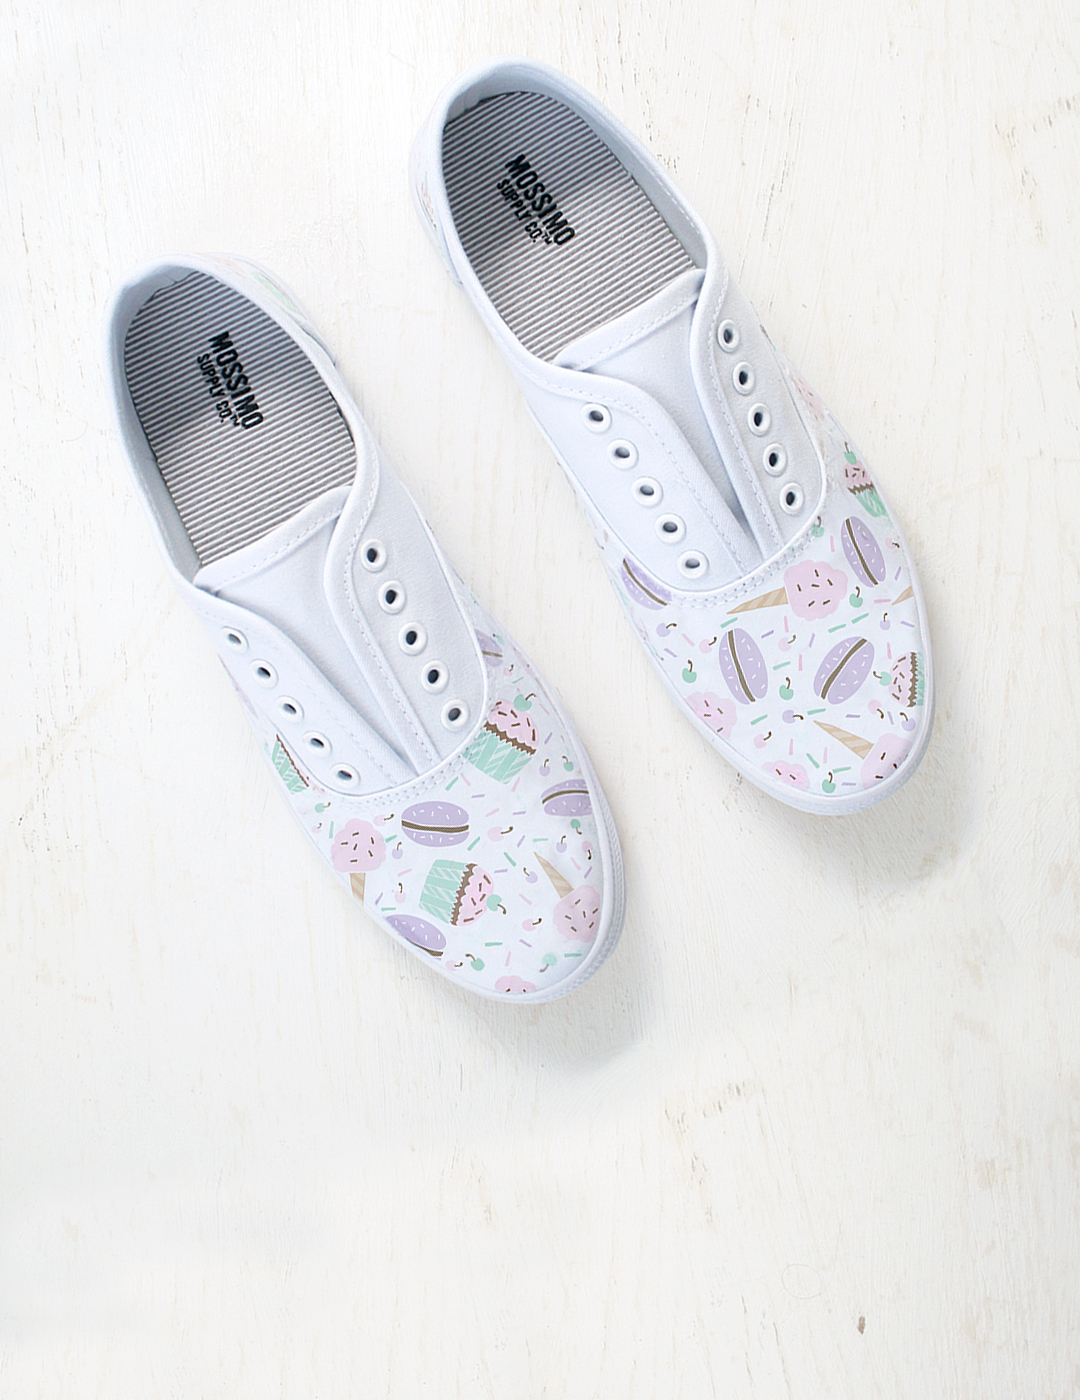 DIY This! Dessert Patterned Shoes